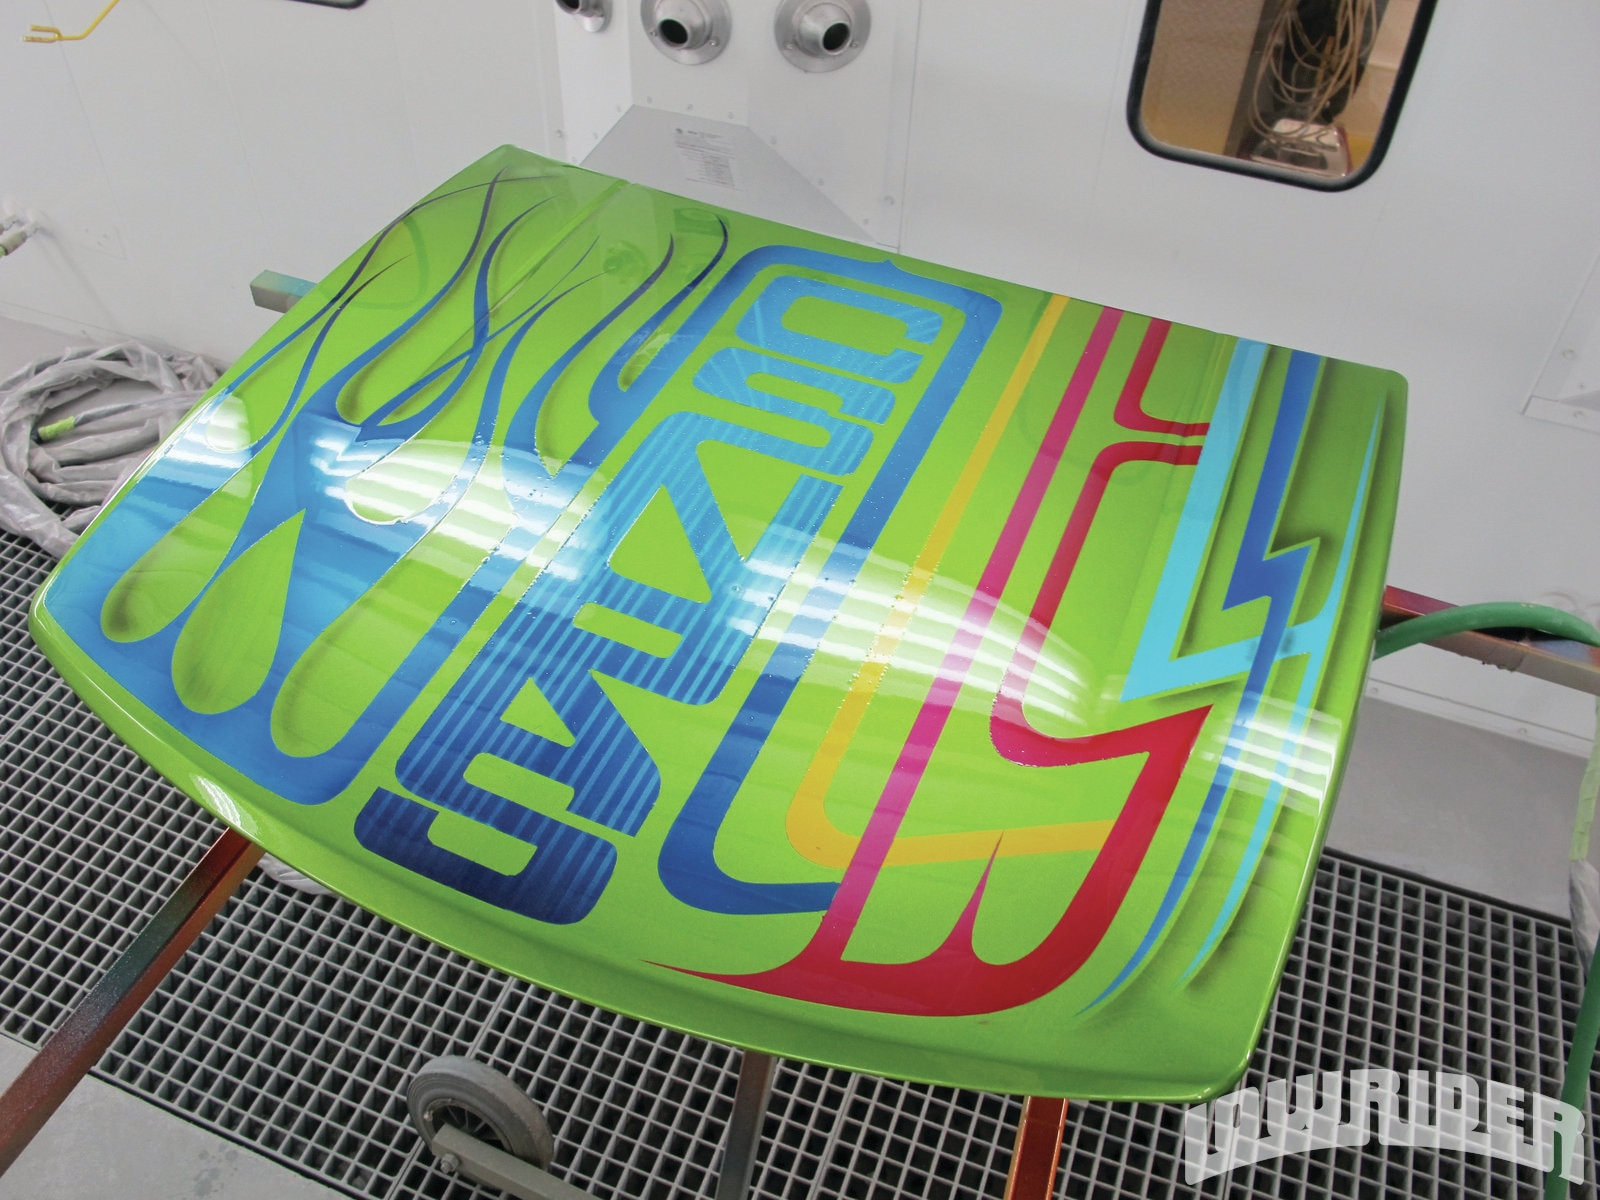 <strong>18</strong>. Manny was the first to get the first clear leaving it ready for pinstriping.